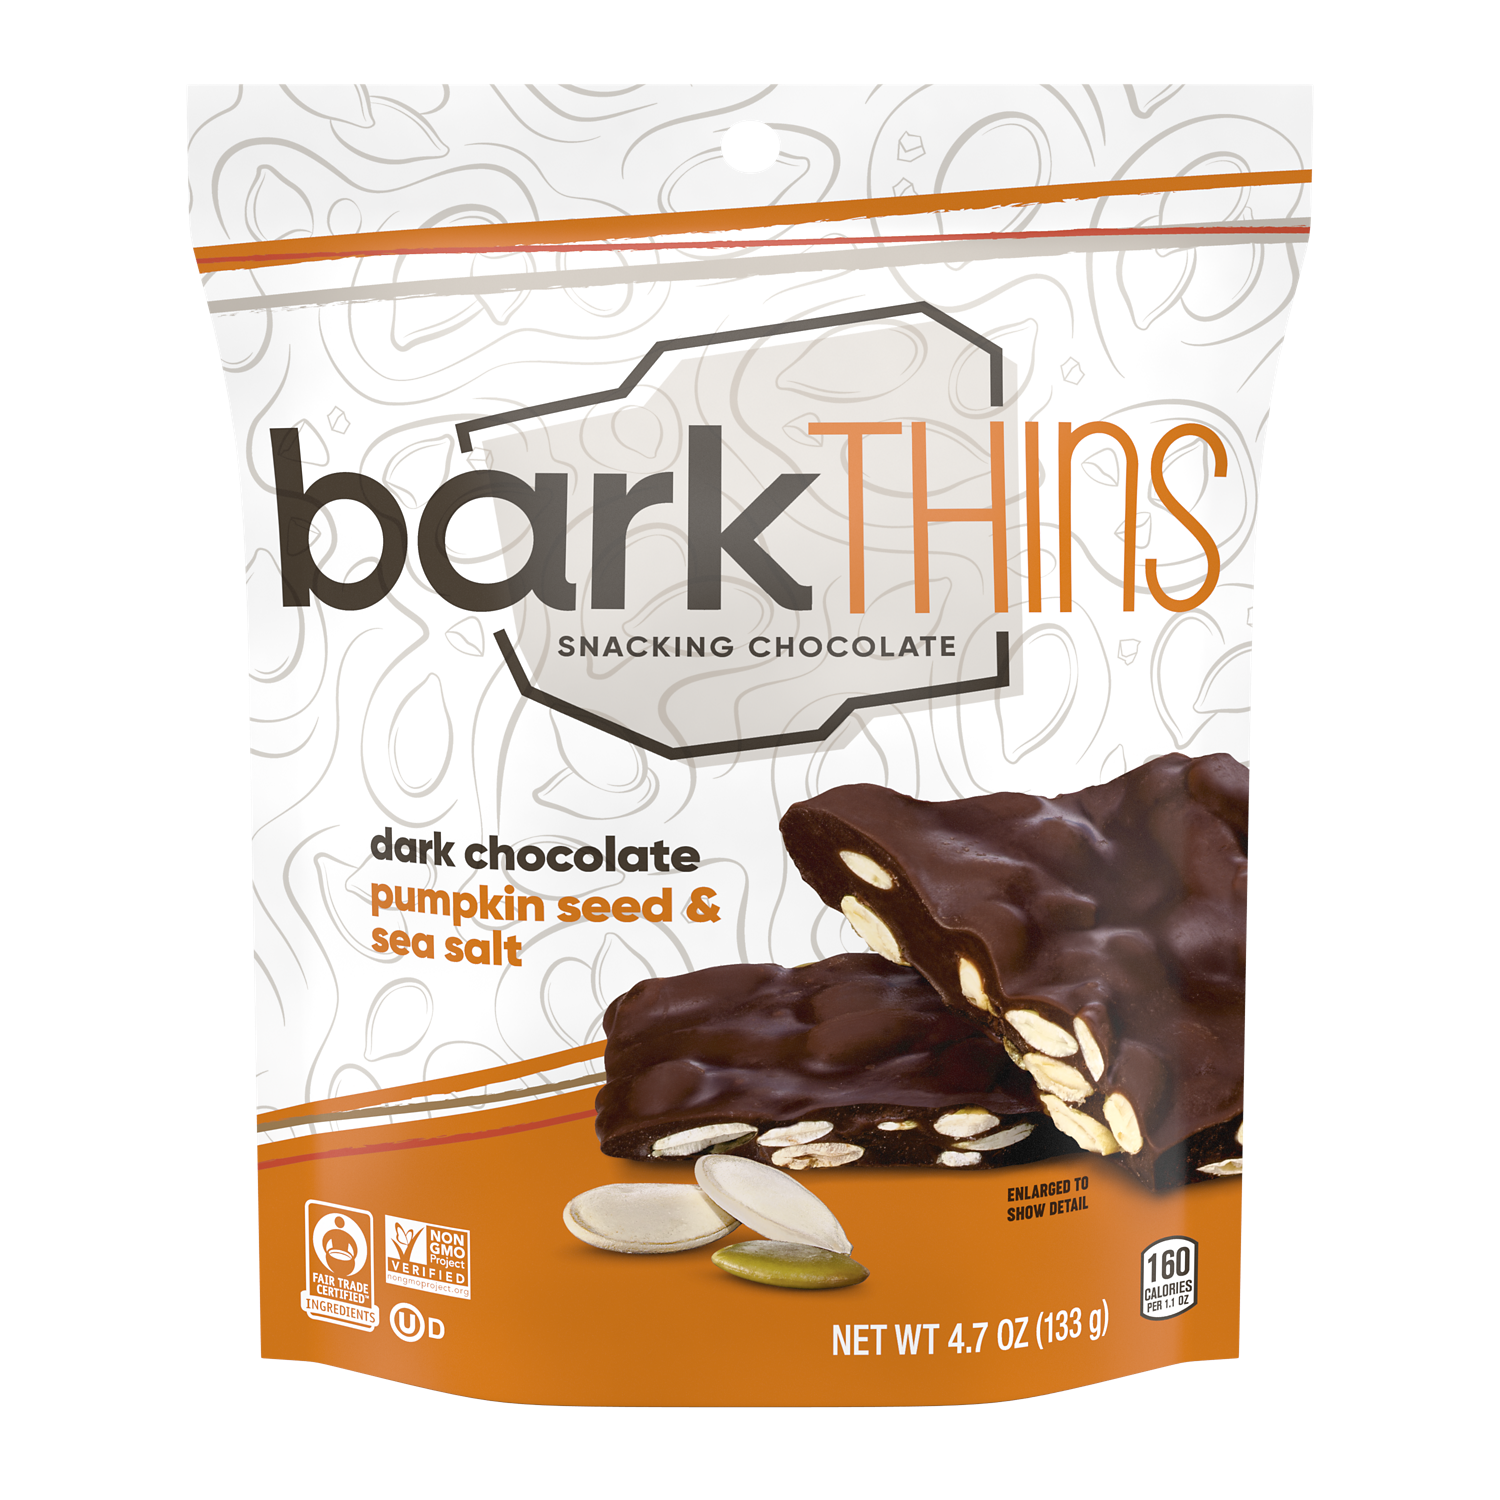 barkTHINS Dark Chocolate Pumpkin Seed & Sea Salt Snacking Chocolate, 4.7 oz bag - Front of Package